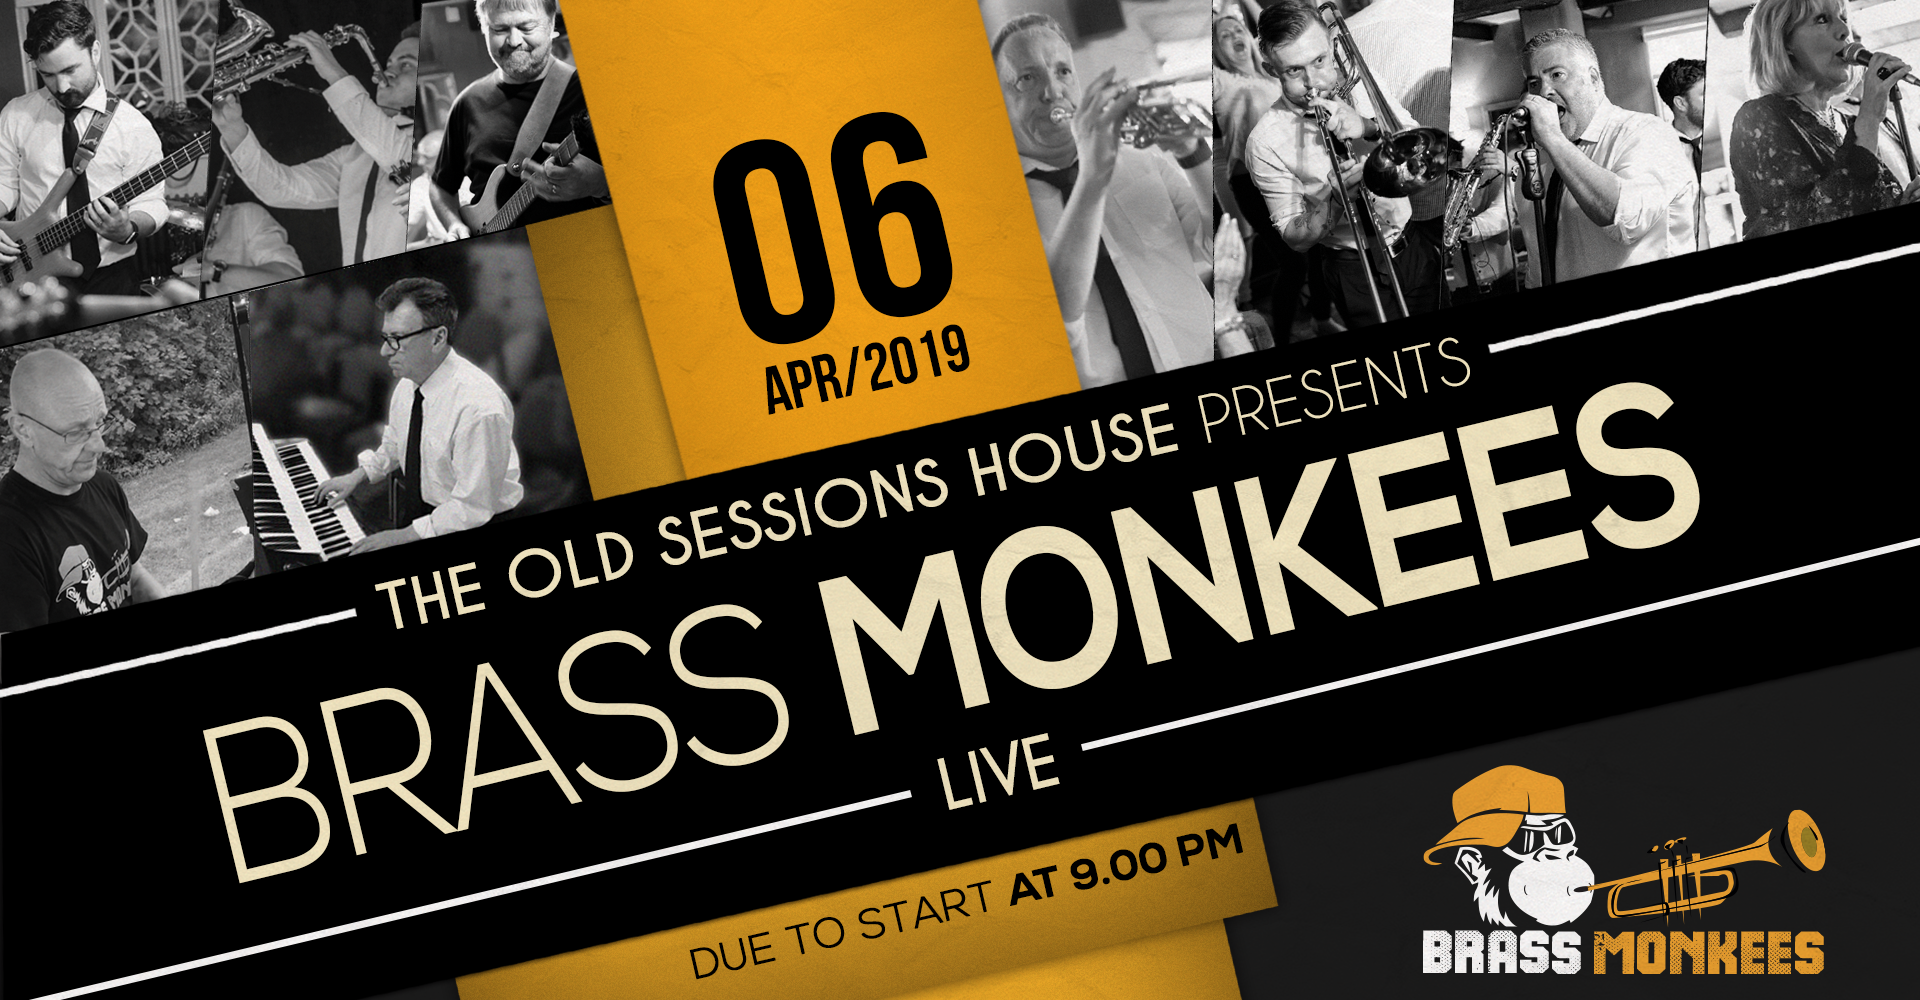 Brass Monkees LIVE at The Old Sessions House